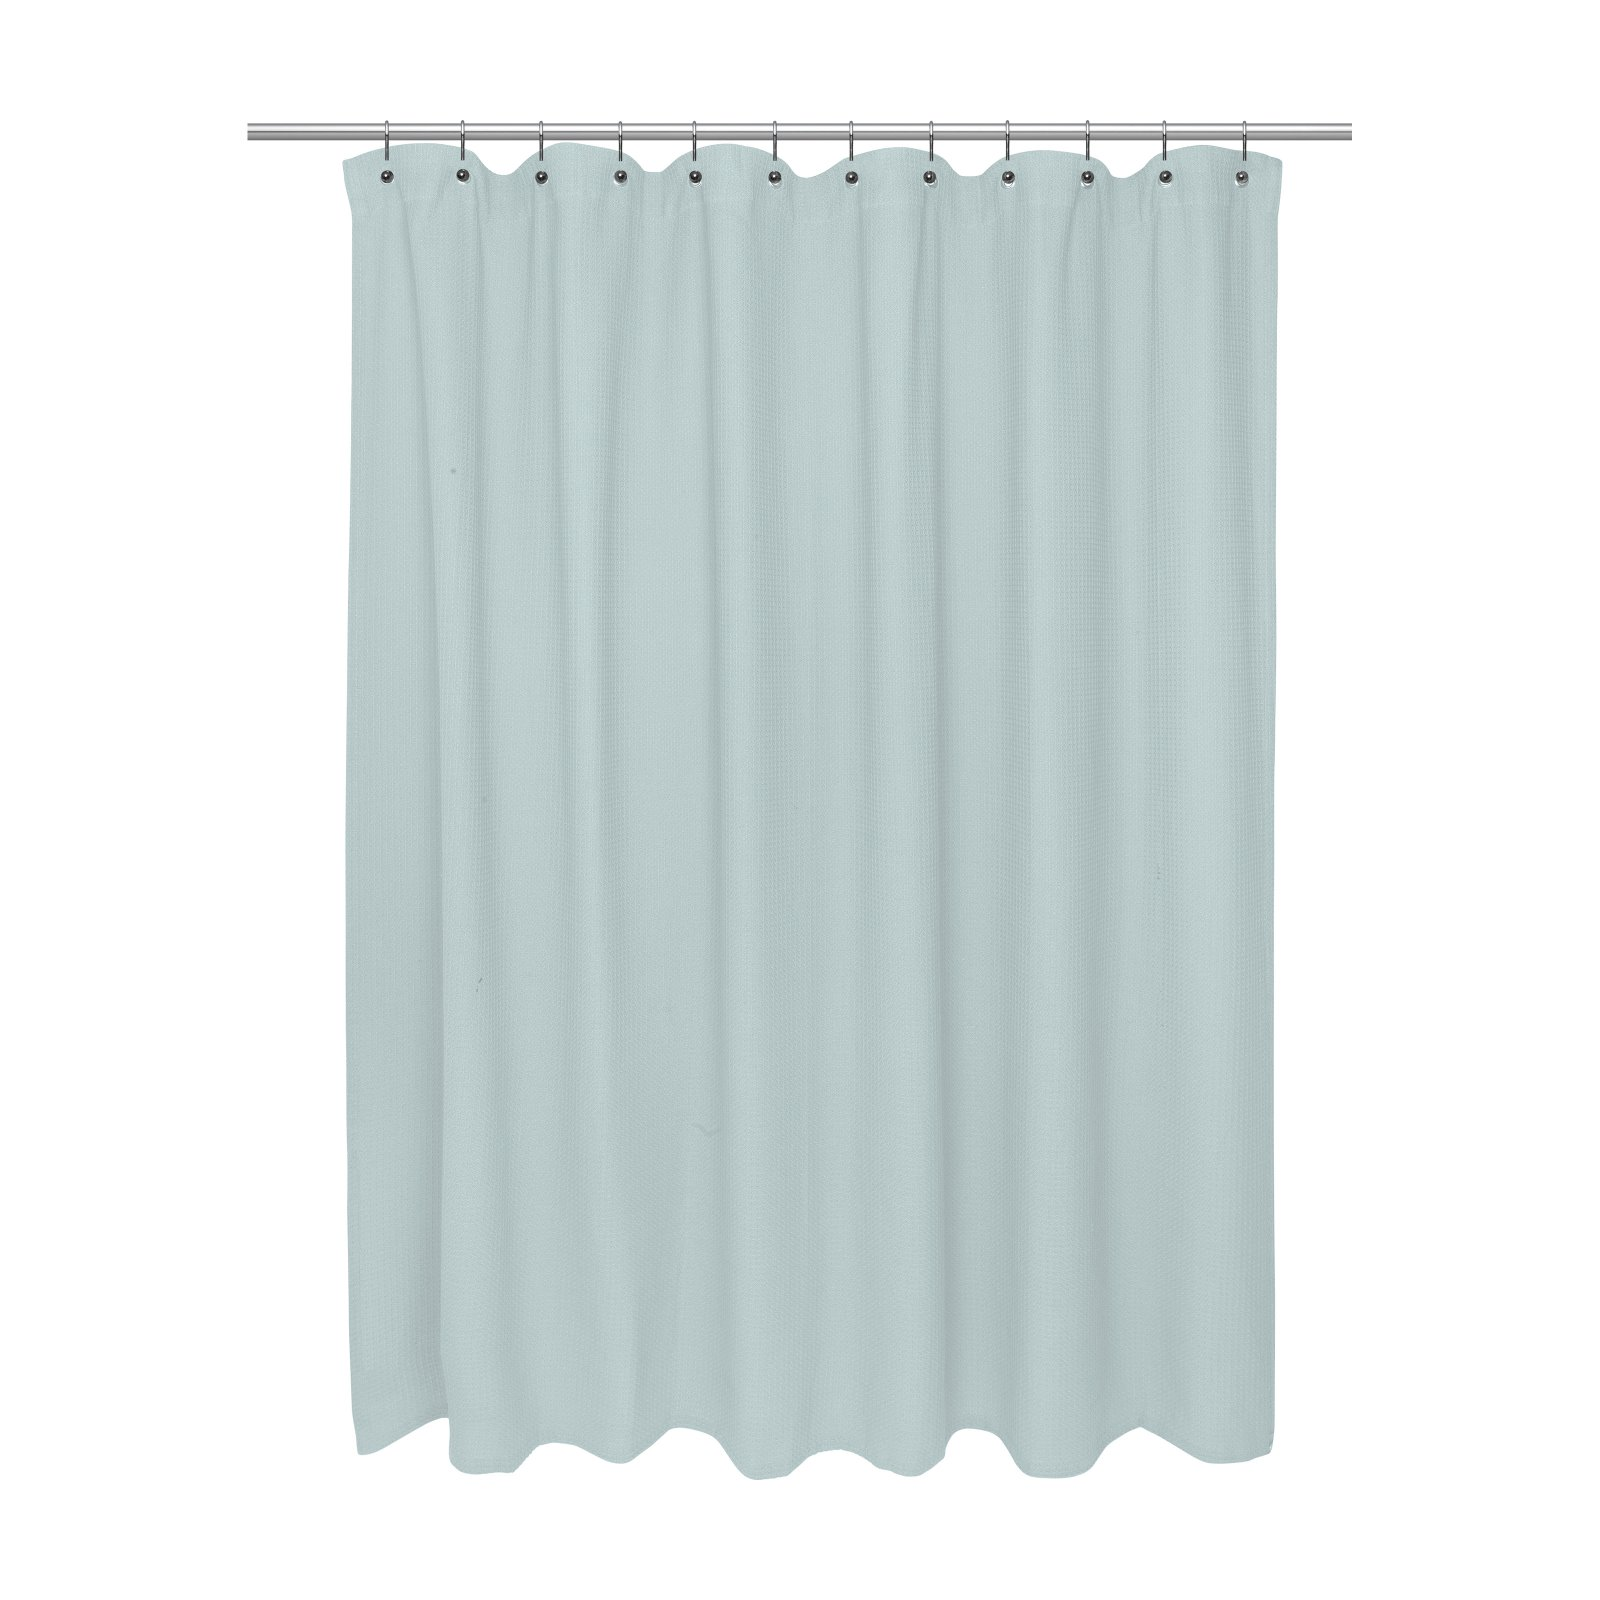 Cotton Waffle Weave Shower Curtain Spa